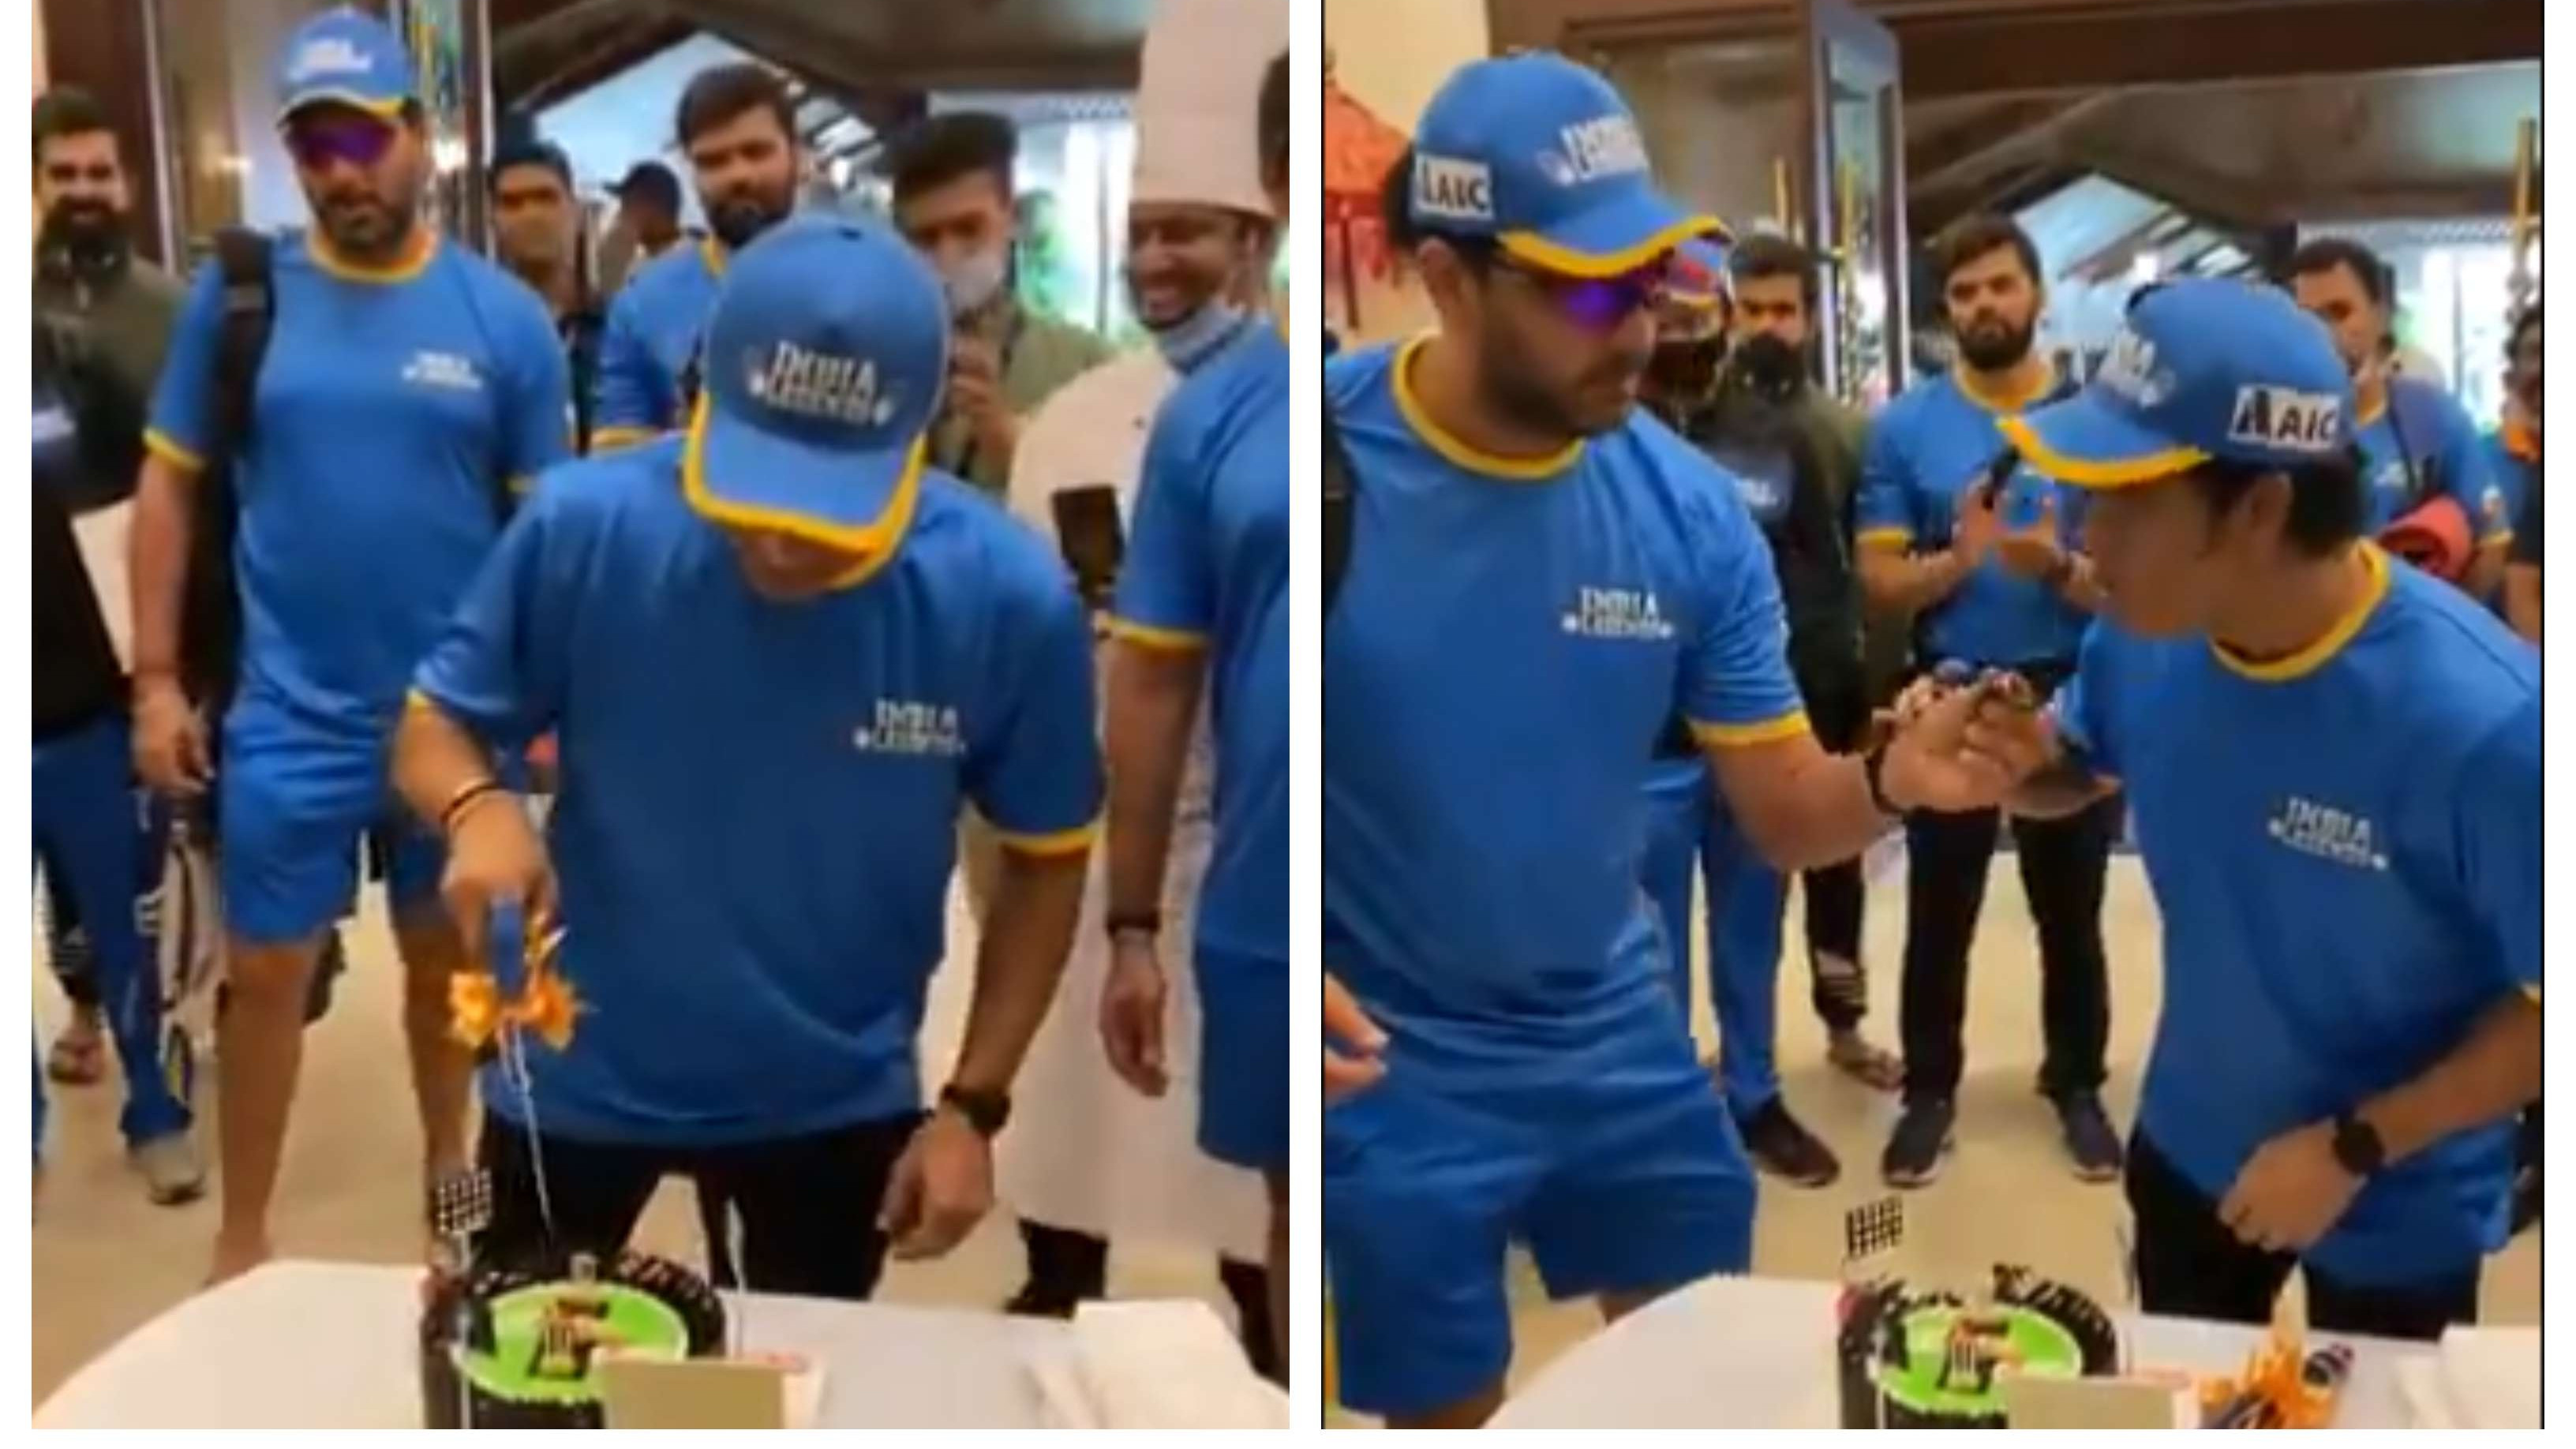 WATCH: Sachin Tendulkar celebrates 9th anniversary of his 100 international tons along with India Legends teammates